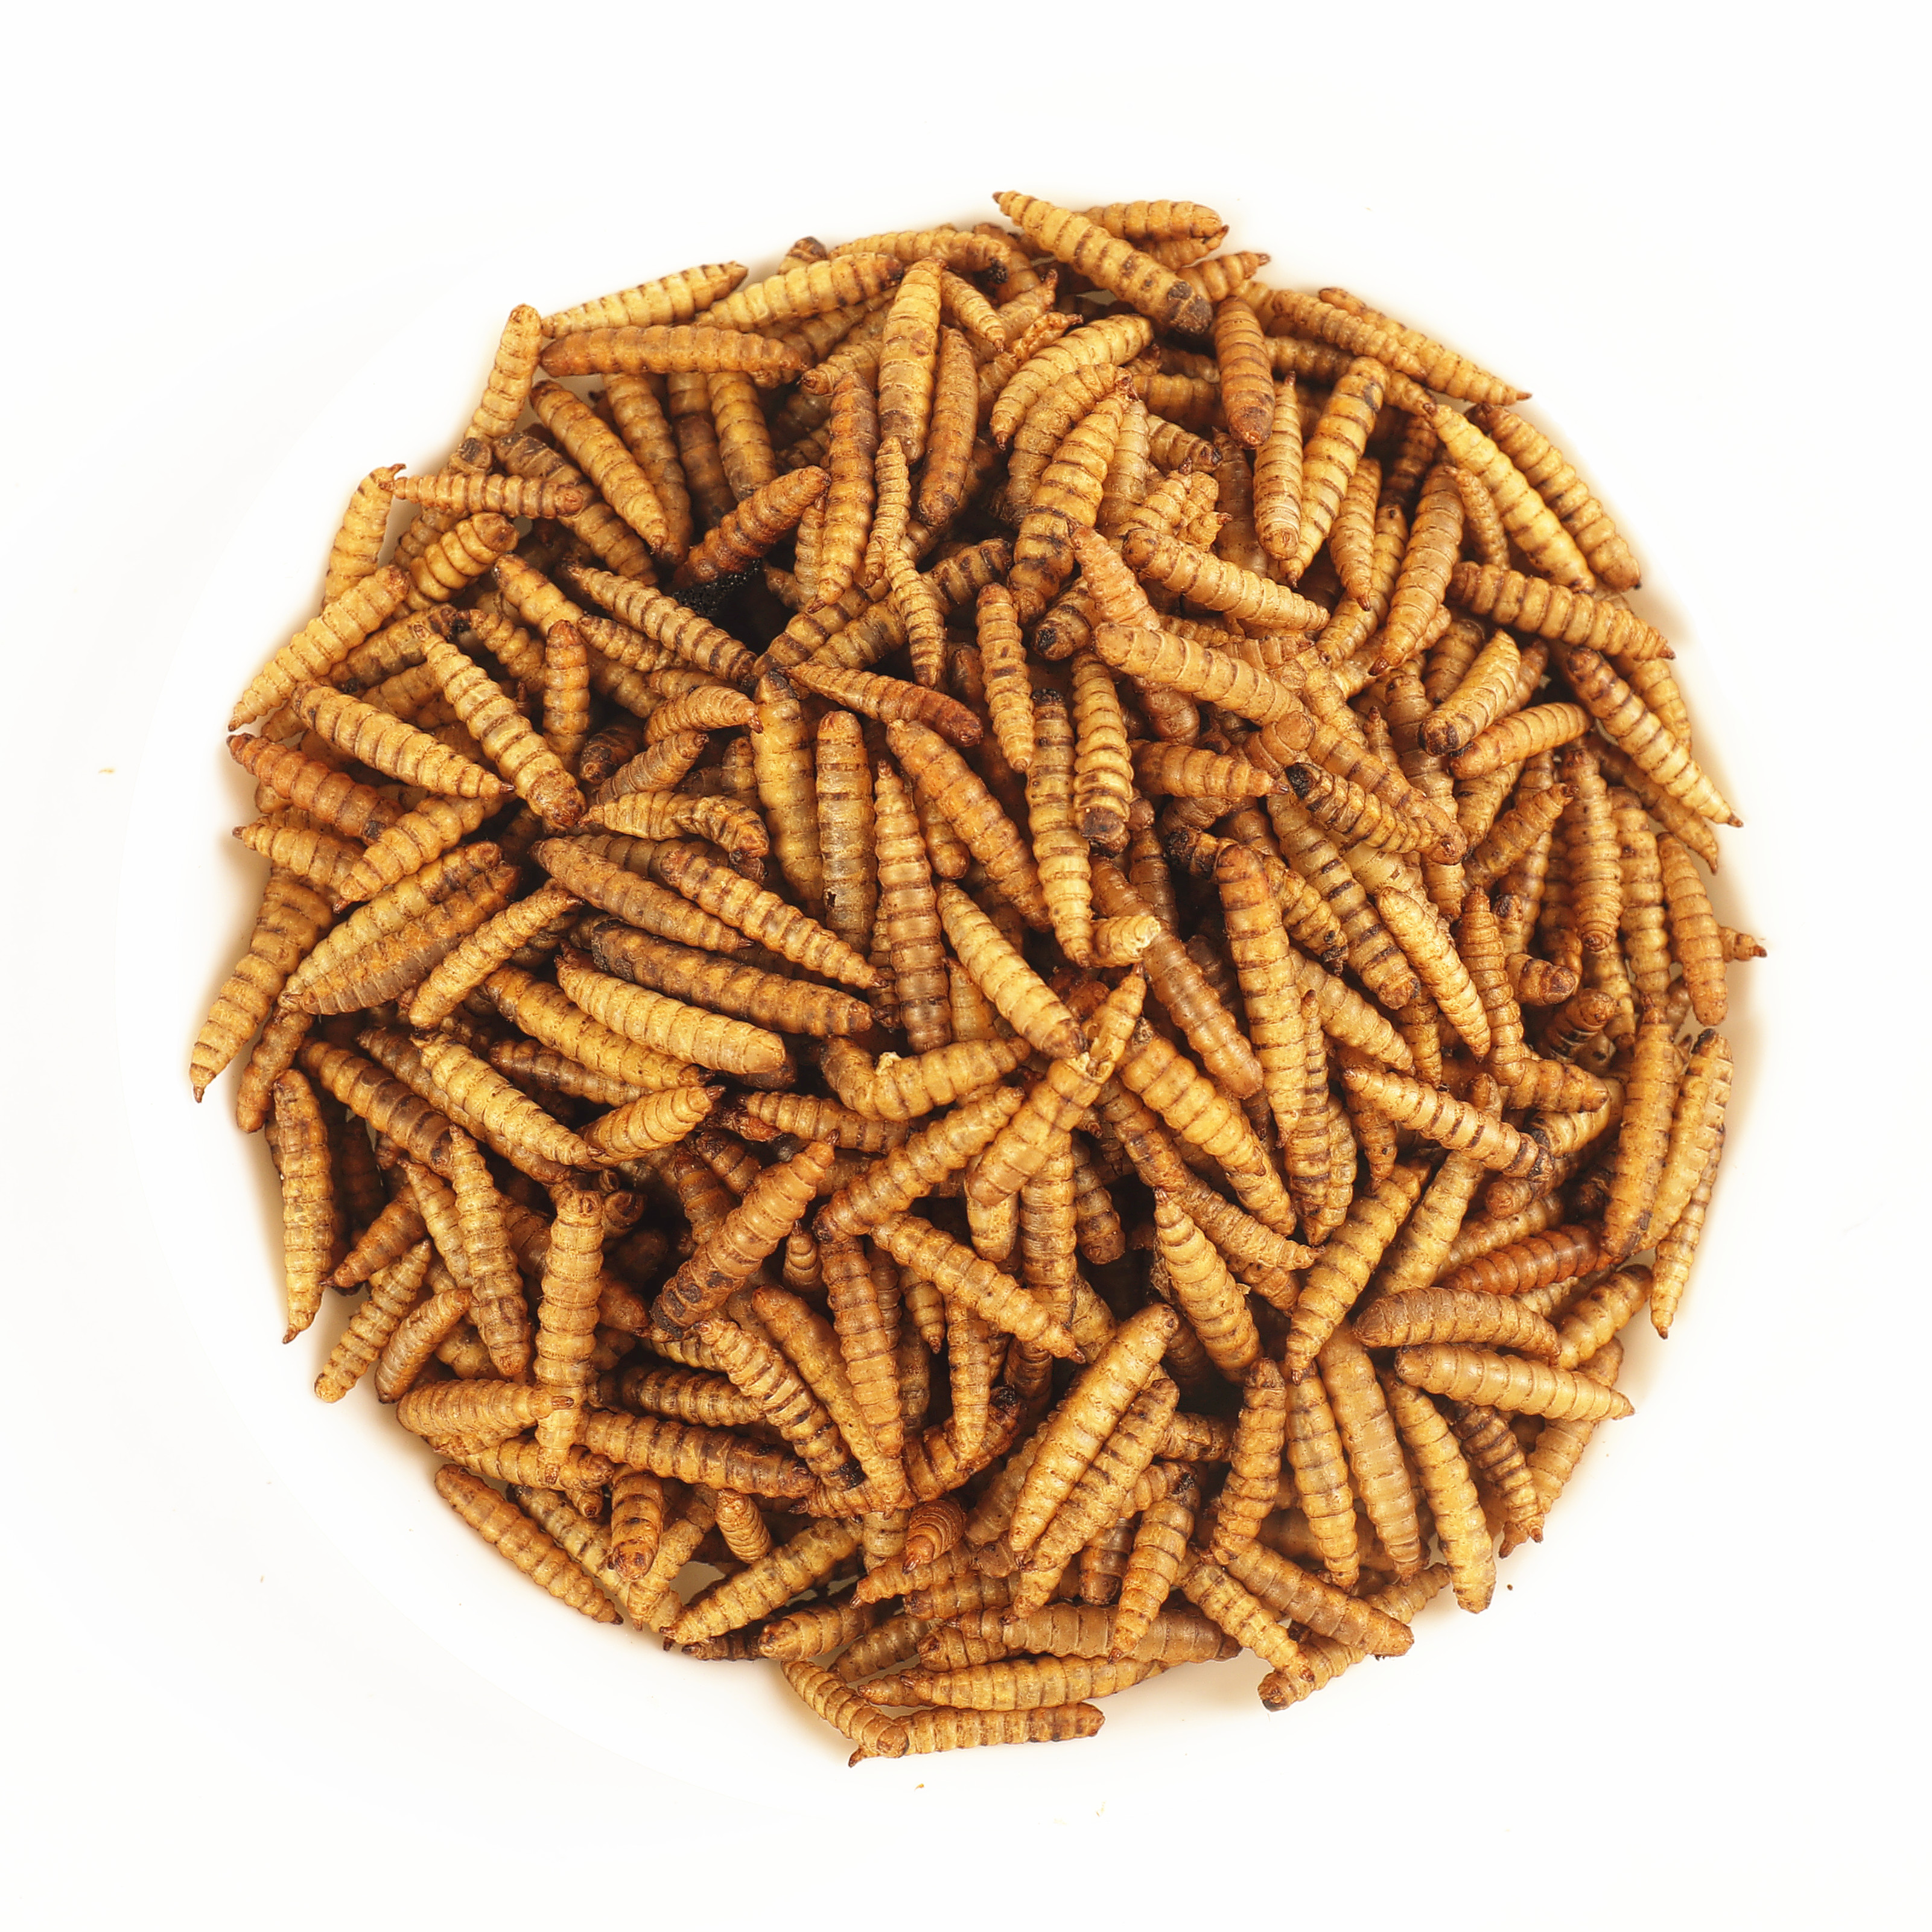 Good China Black Soldier Fly Larvae - Hermetia Illucens